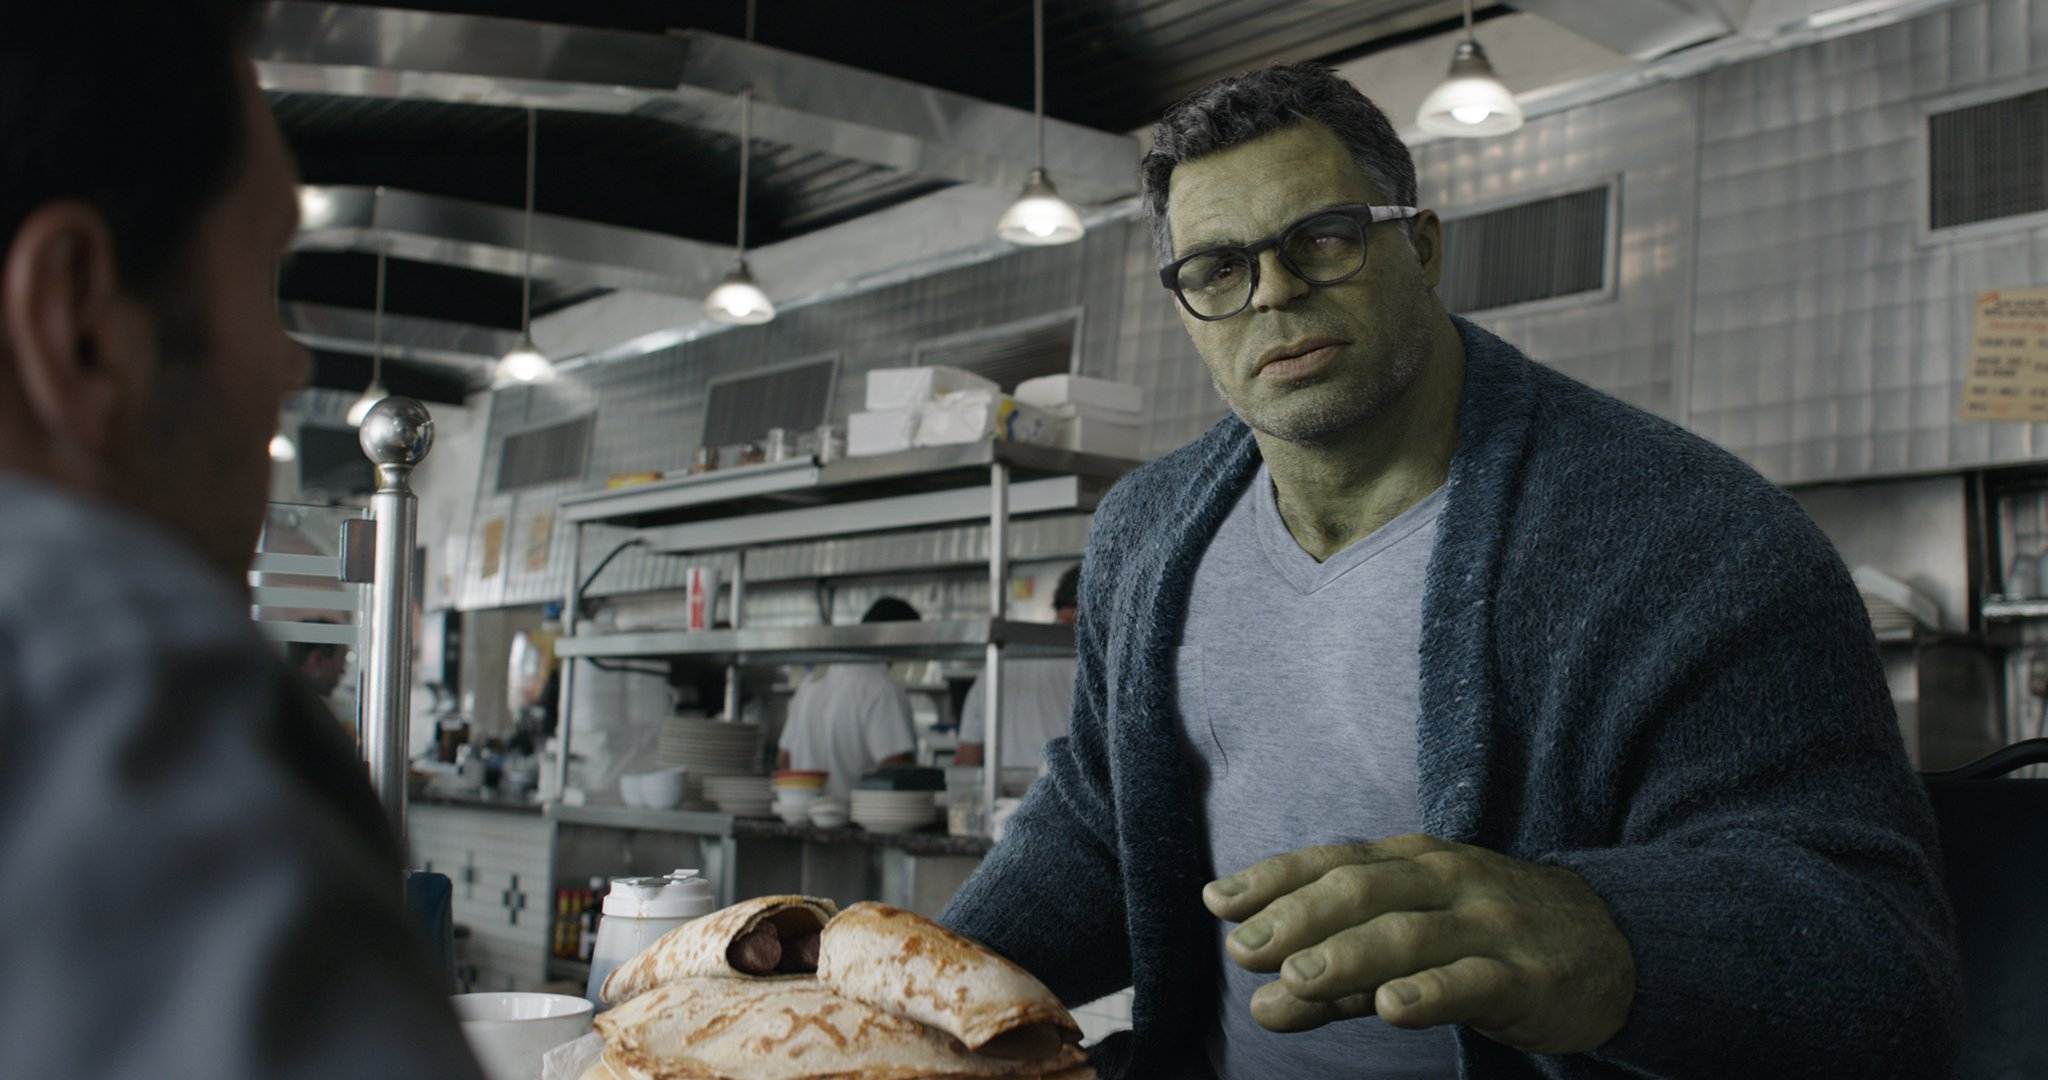 Photo du film Avengers: Endgame avec professeur Hulk